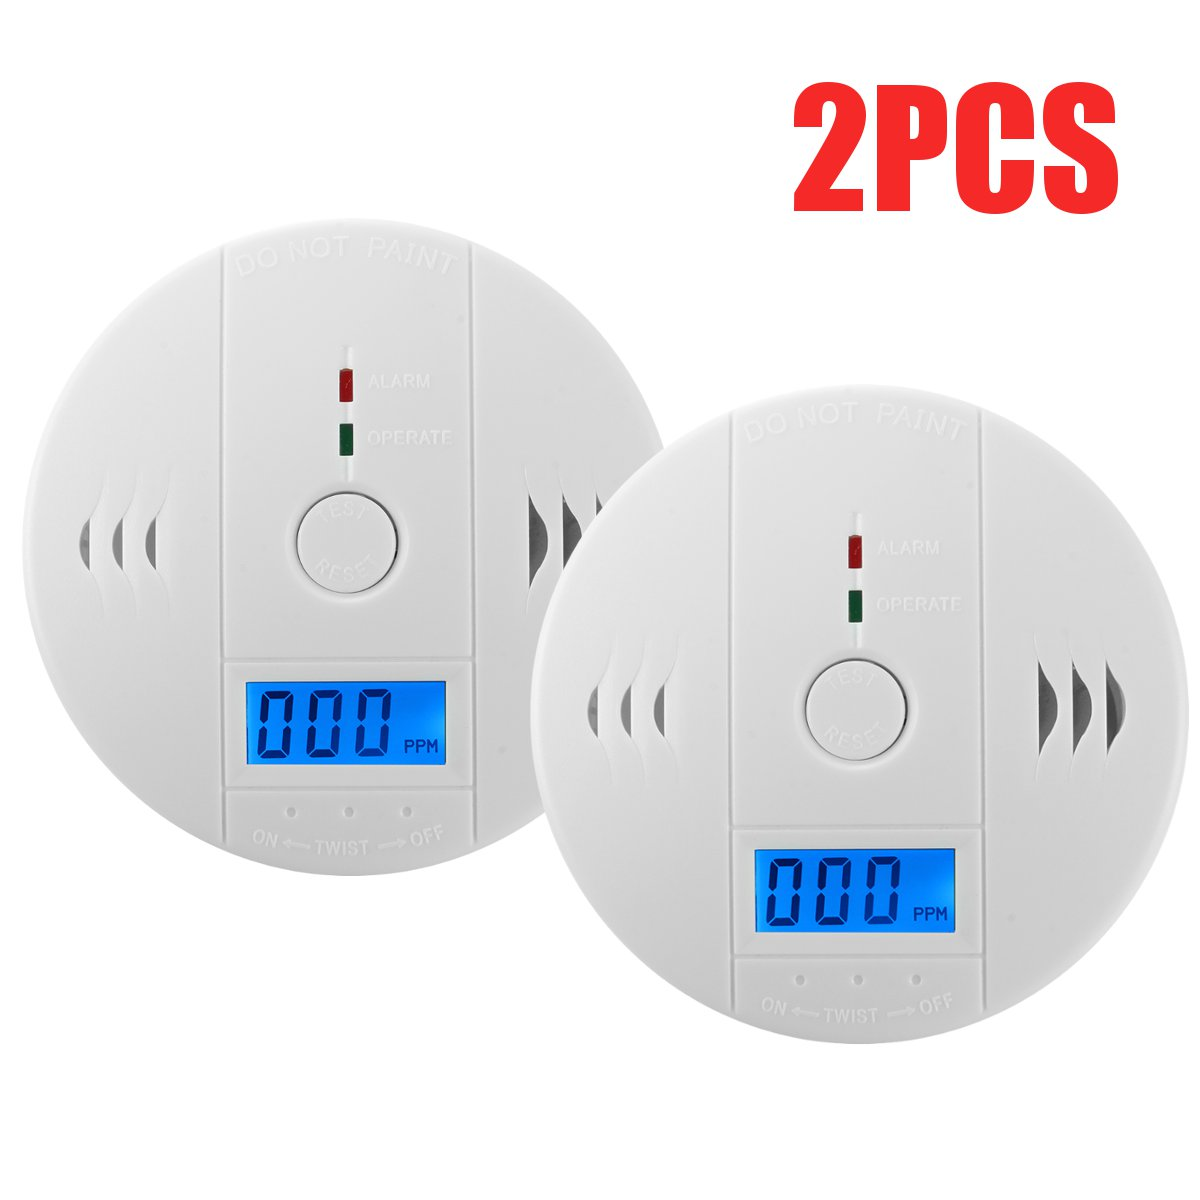 2PCS Battery Operated CO Carbon Monoxide Detector Fire Sensor LED Indicator with Sound Alarm Digital Display Security High Sensitivity